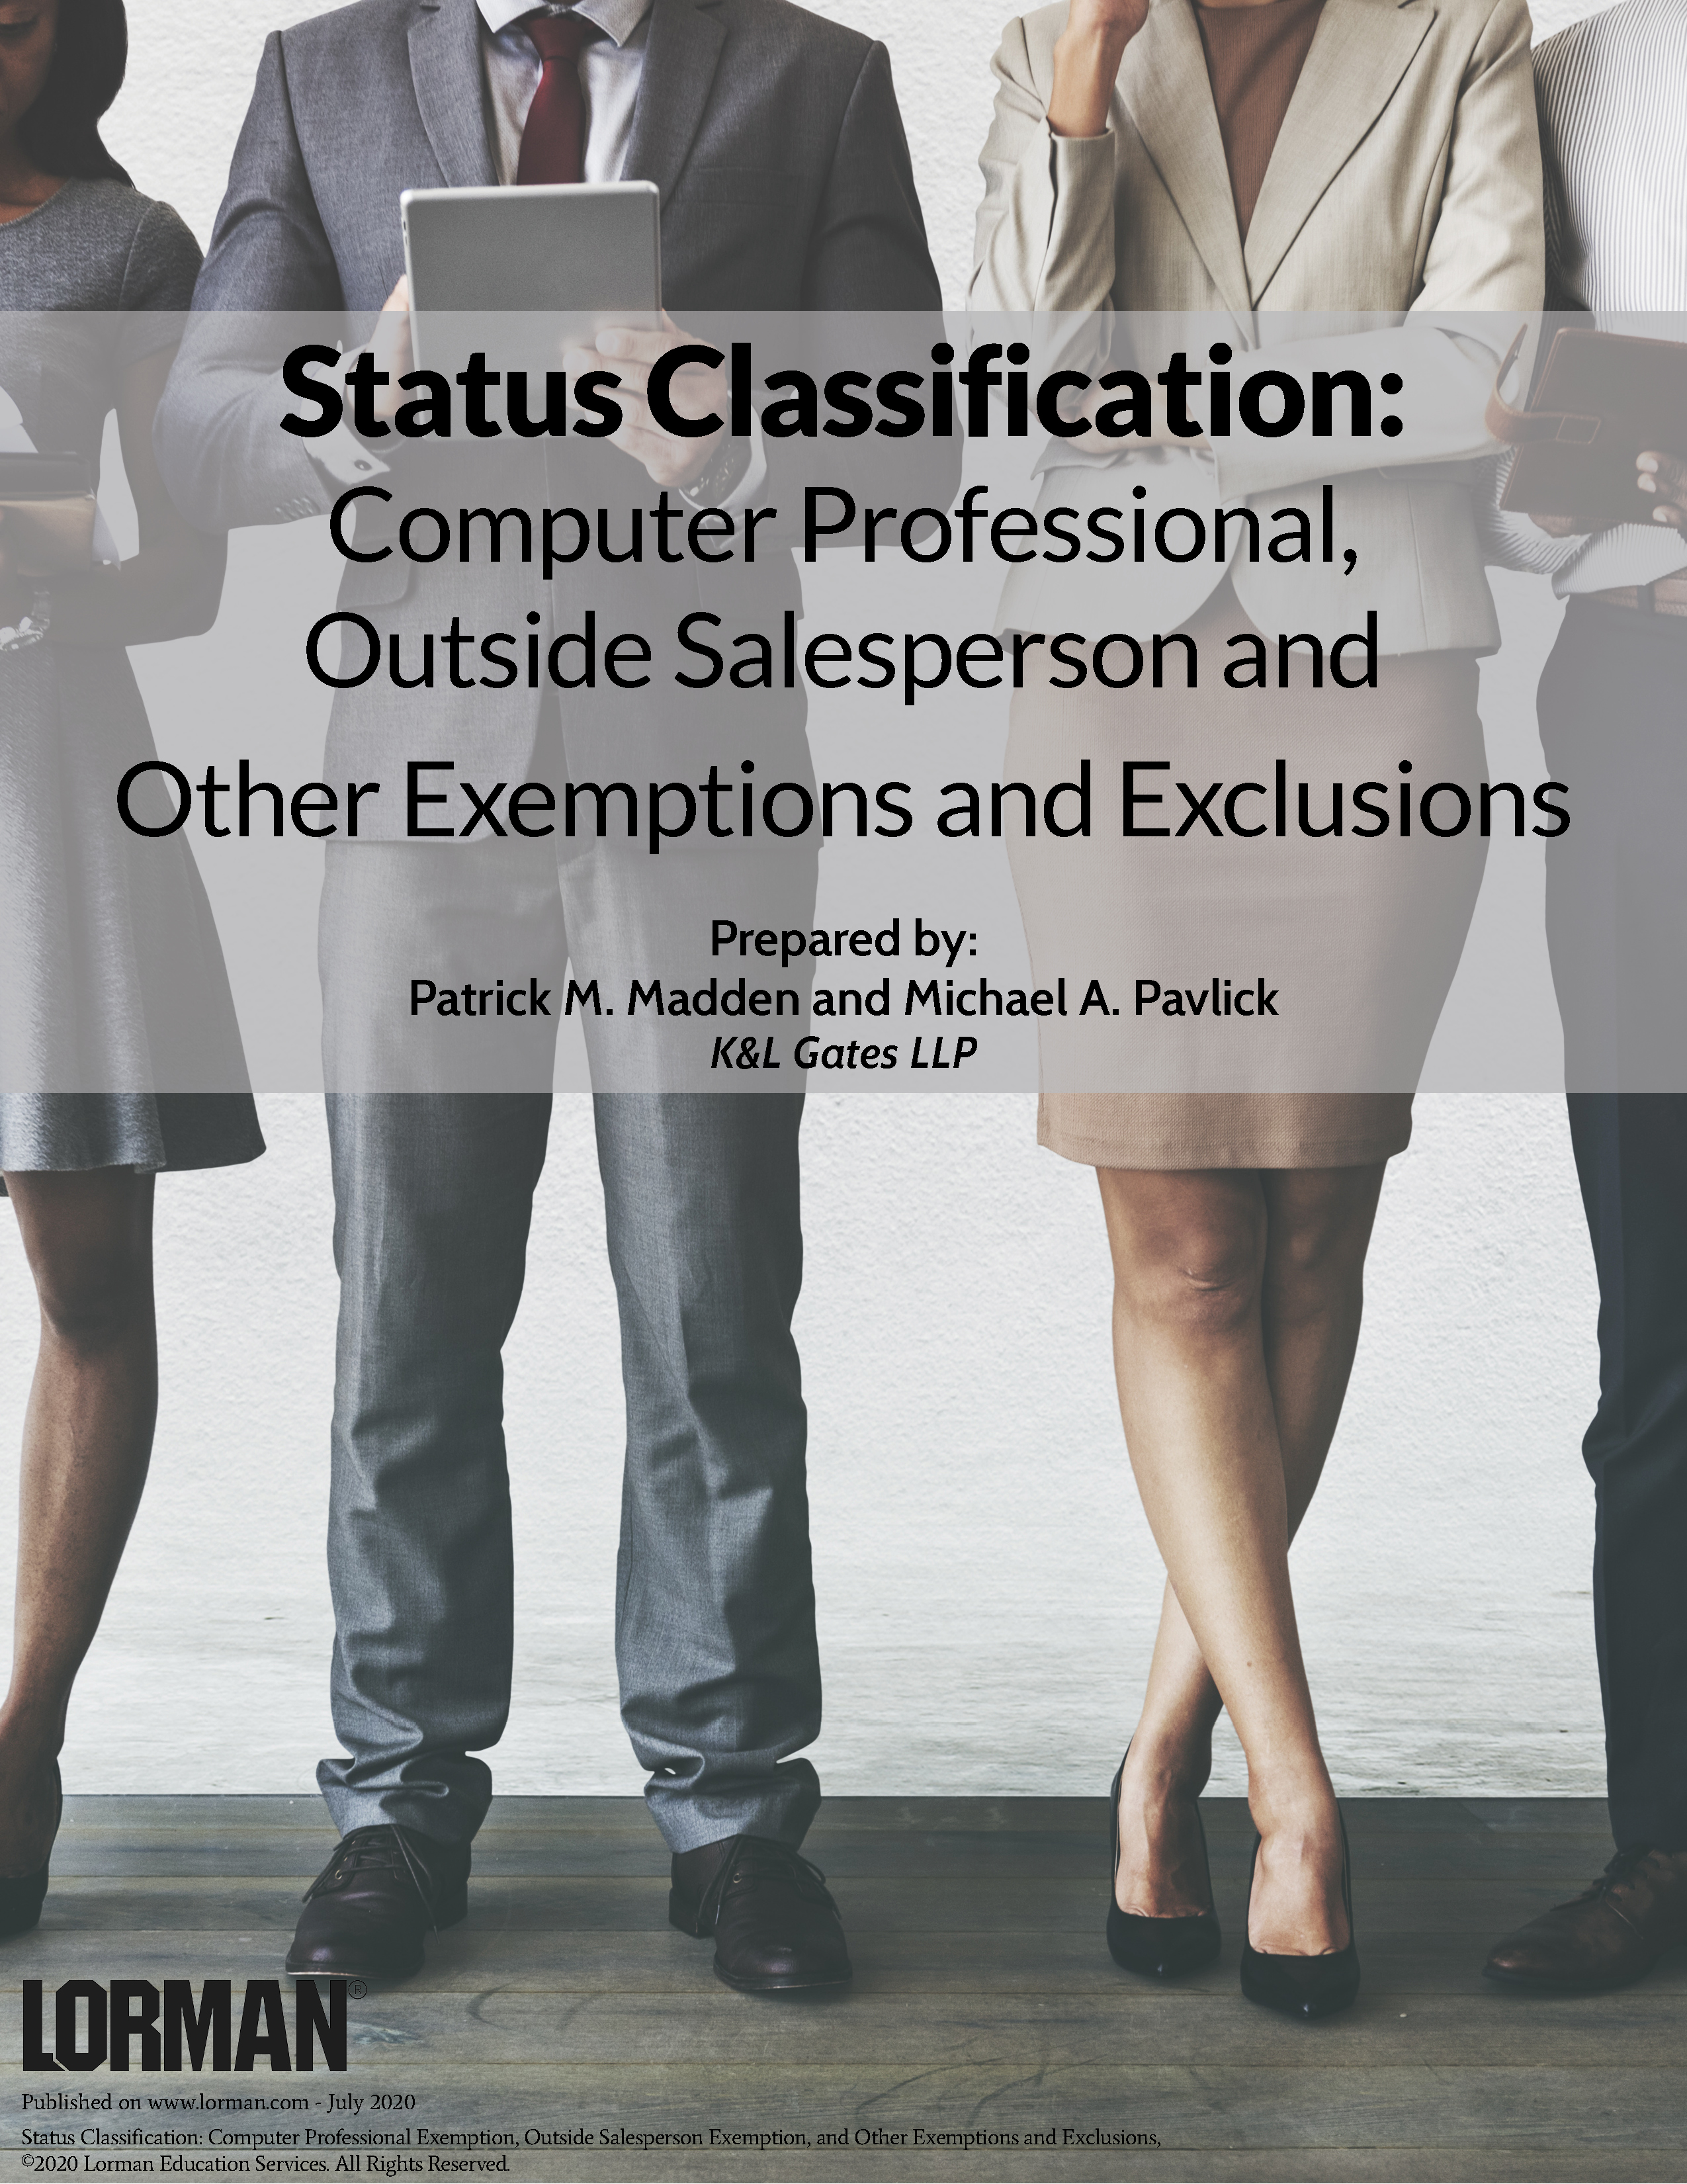 Status Classification: Computer Professional, Outside Salesperson & Other Exemptions & Exclusions